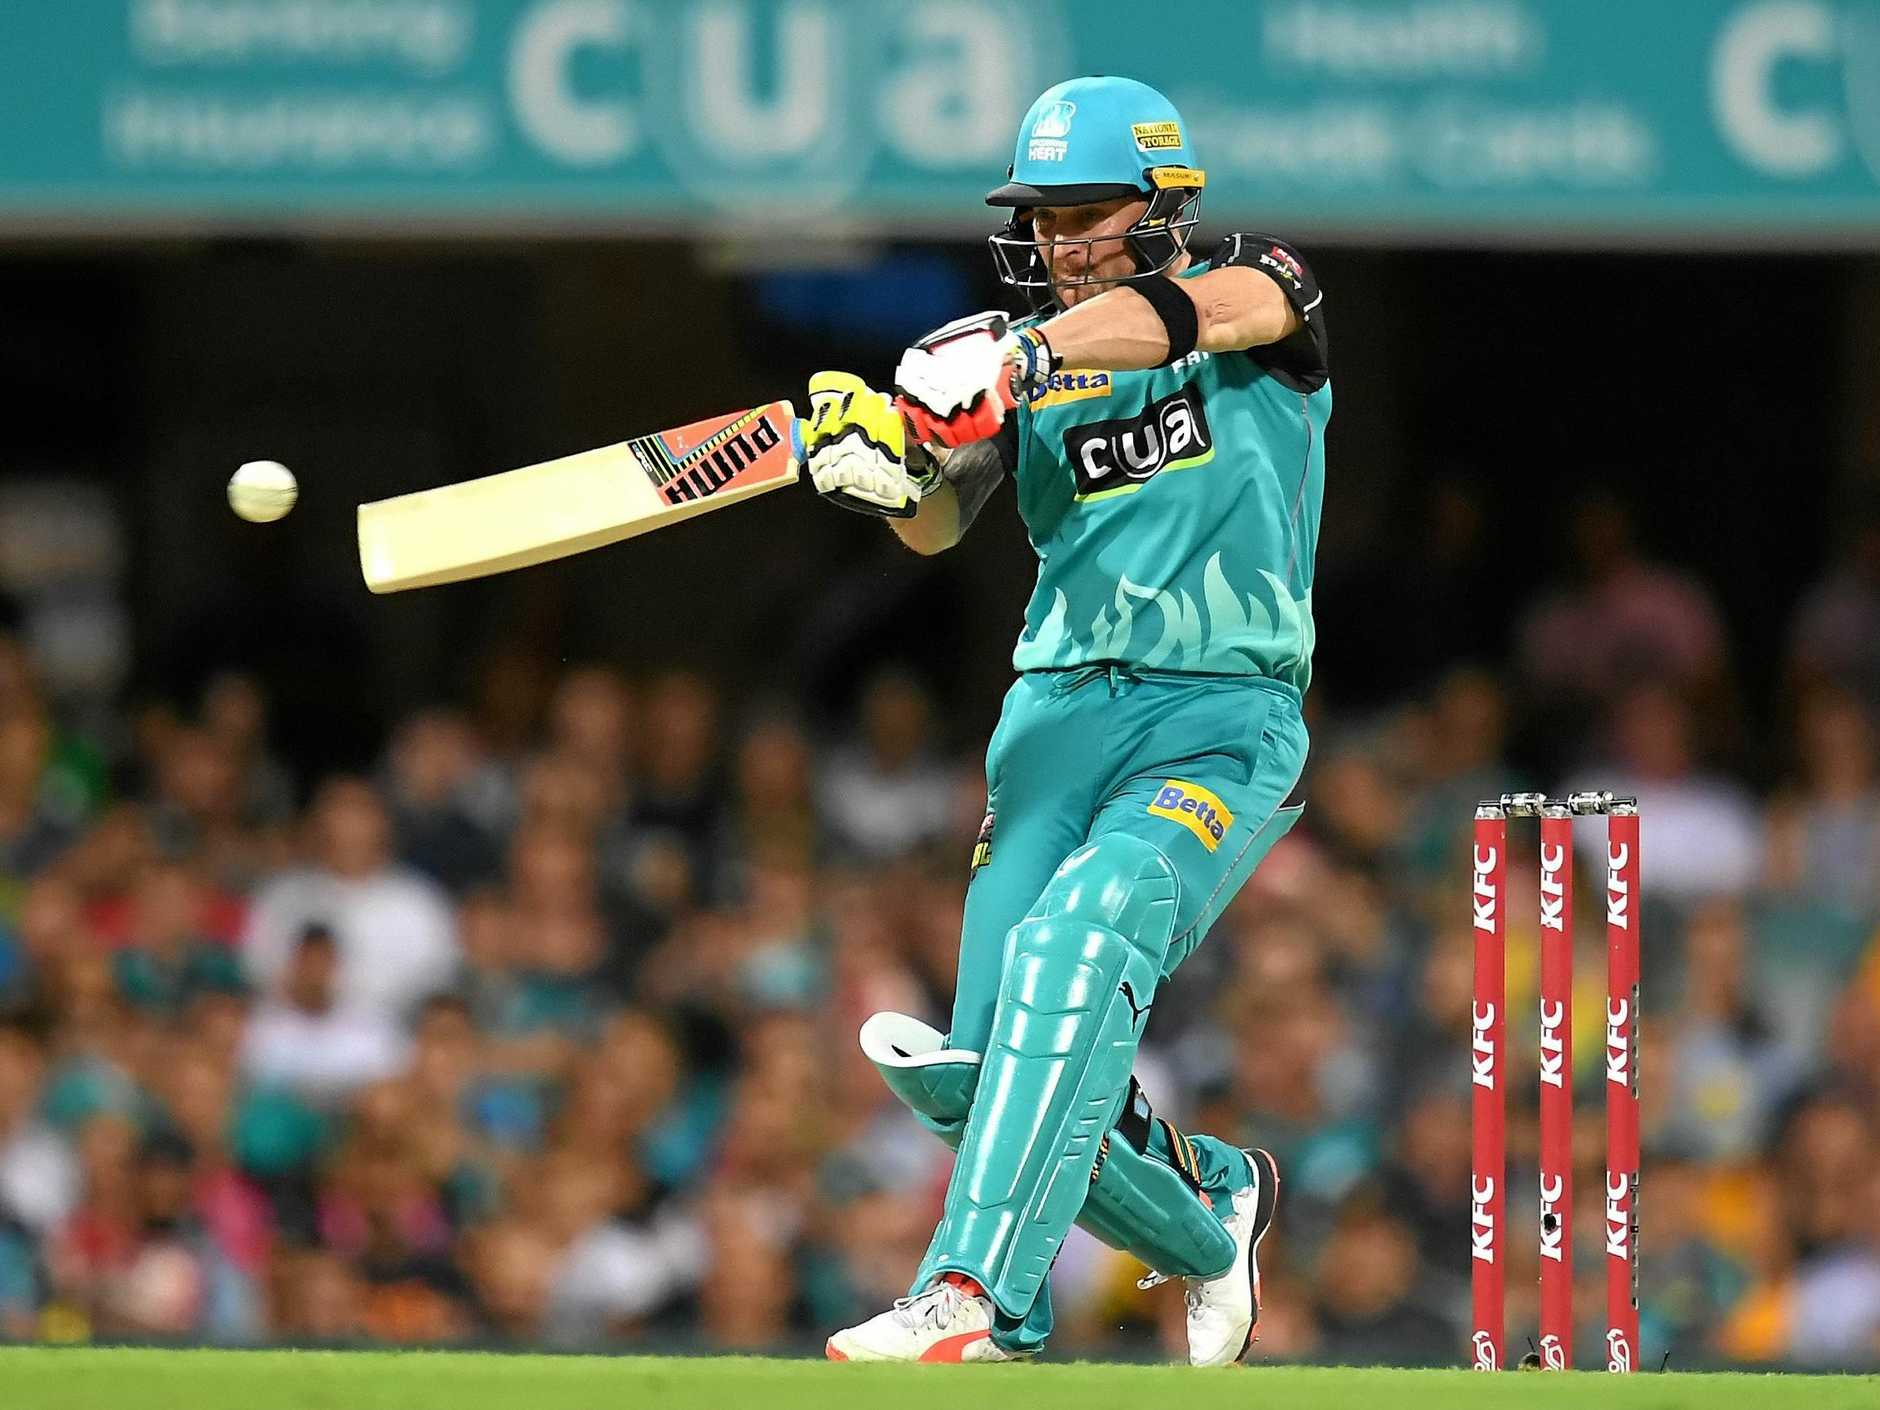 Brisbane Heat player Brendon McCullum plays a shot  during the Big Bash League (BBL) T20 semi-final match between the Brisbane Heat and  Sydney Sixers at the Gabba in Brisbane, Wednesday, Jan. 25, 2017. (AAP Image/Dave Hunt) NO ARCHIVING, EDITORIAL USE ONLY, IMAGES TO BE USED FOR NEWS REPORTING PURPOSES ONLY, NO COMMERCIAL USE WHATSOEVER, NO USE IN BOOKS WITHOUT PRIOR WRITTEN CONSENT FROM AAP